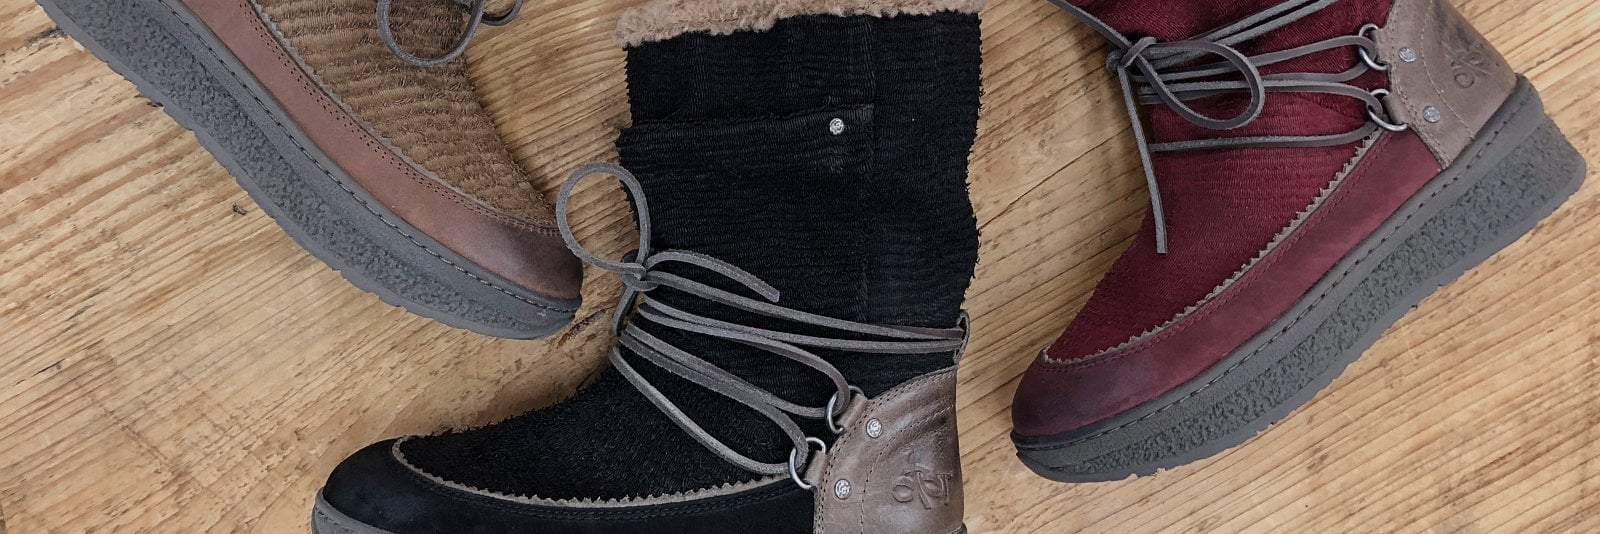 Sale-Priced Cold Weather Boots